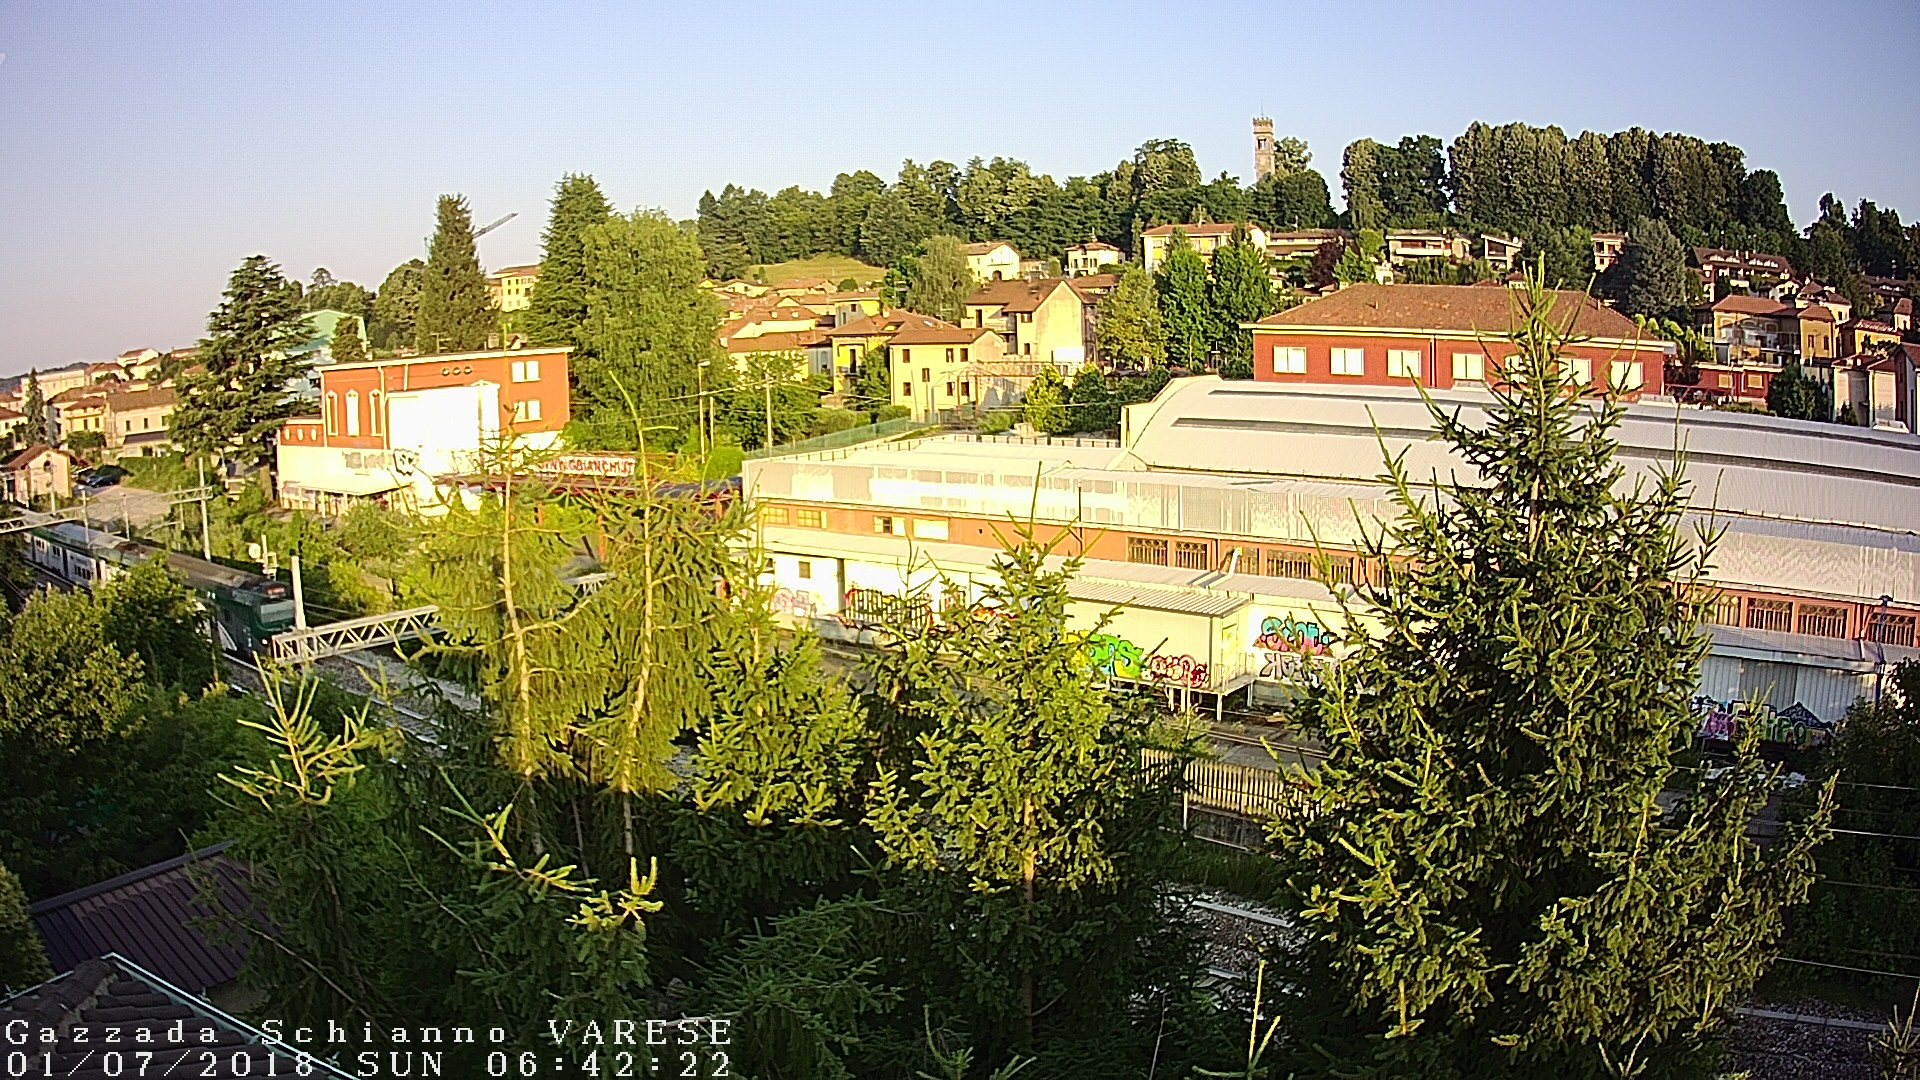 webcam gazzada schianno n. 47244